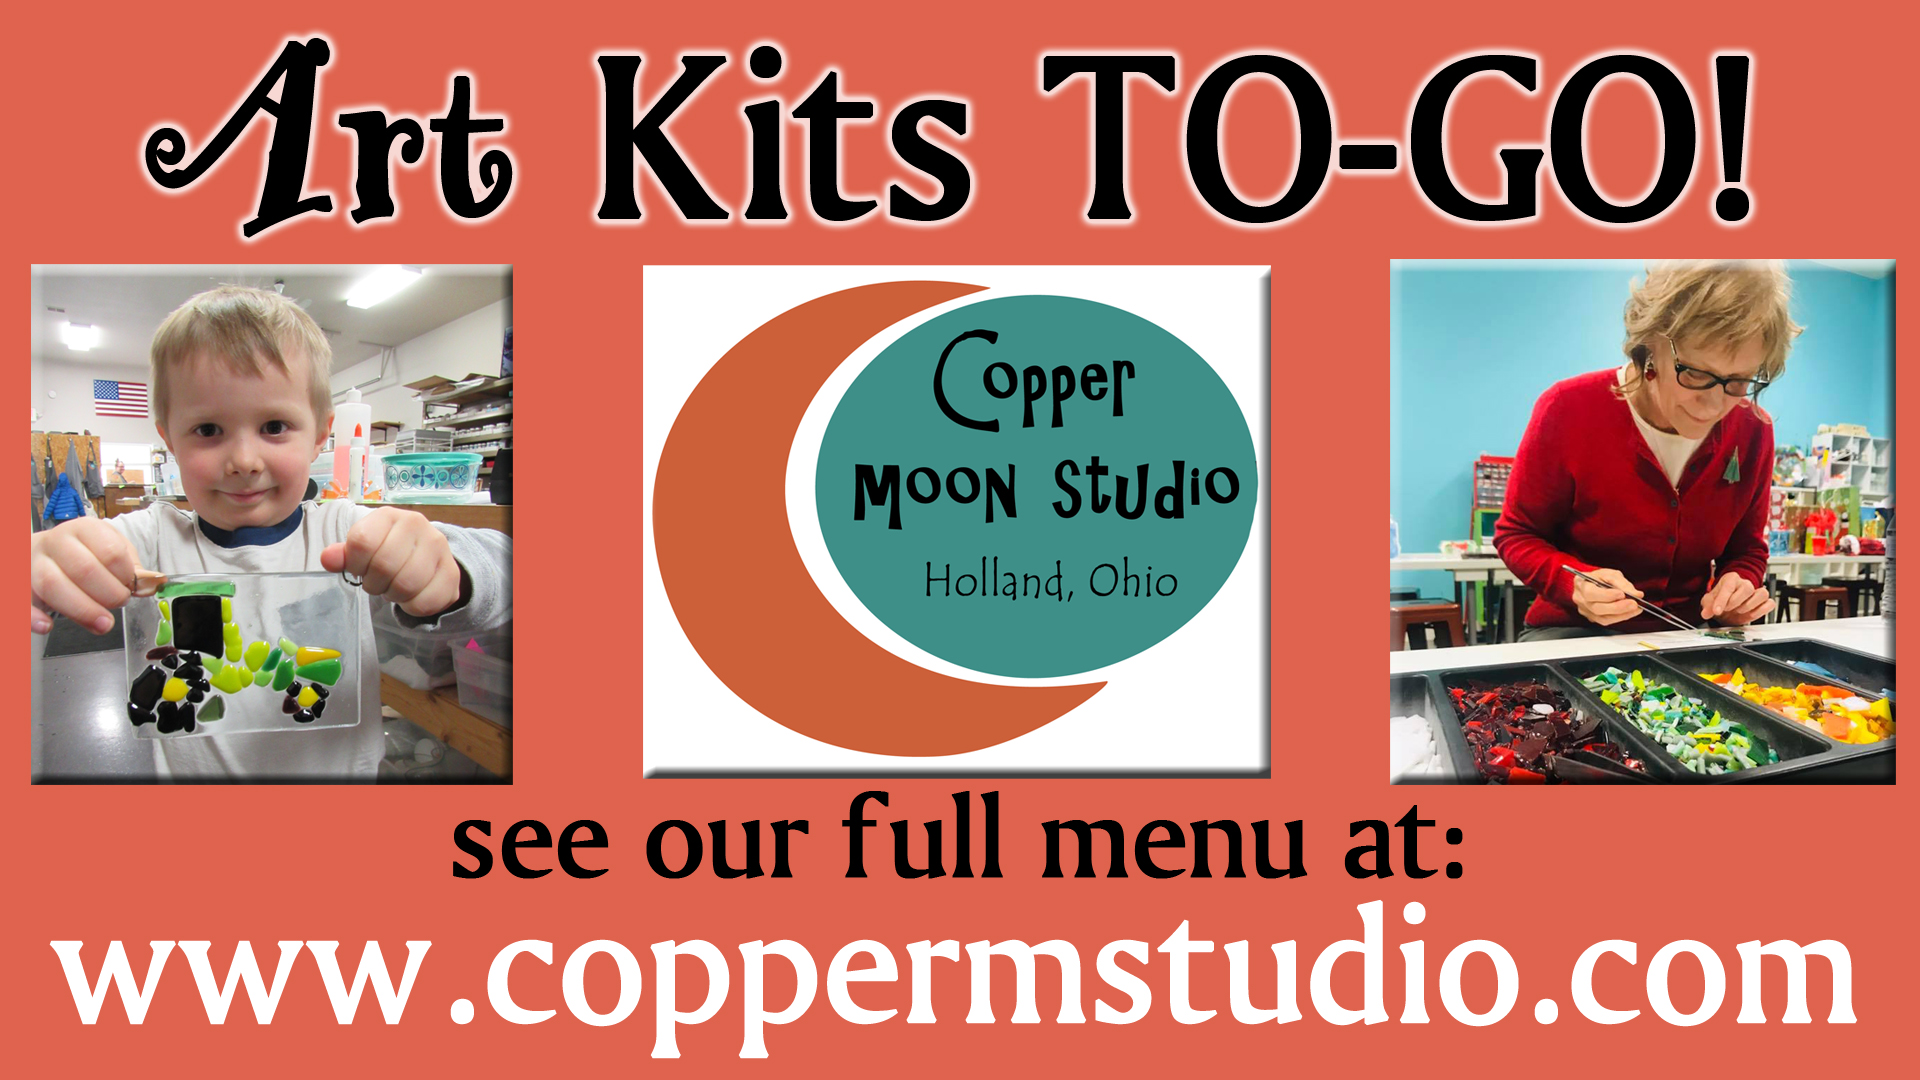 ART KITS TO GO BANNER